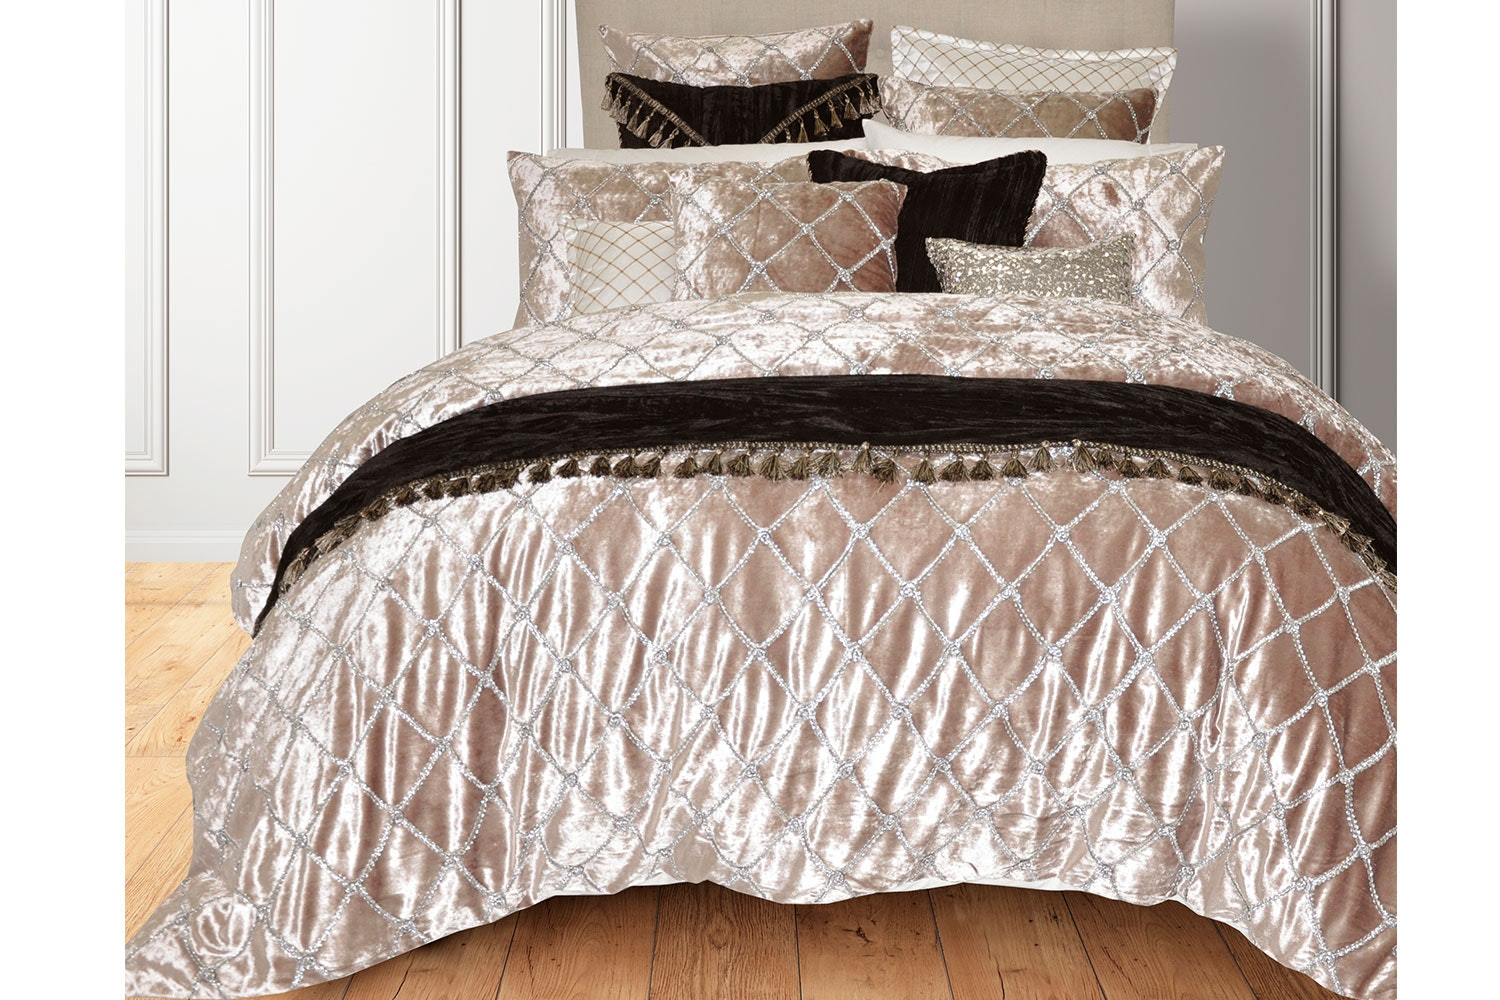 Julienne Mink Duvet Cover Set by Da Vinci